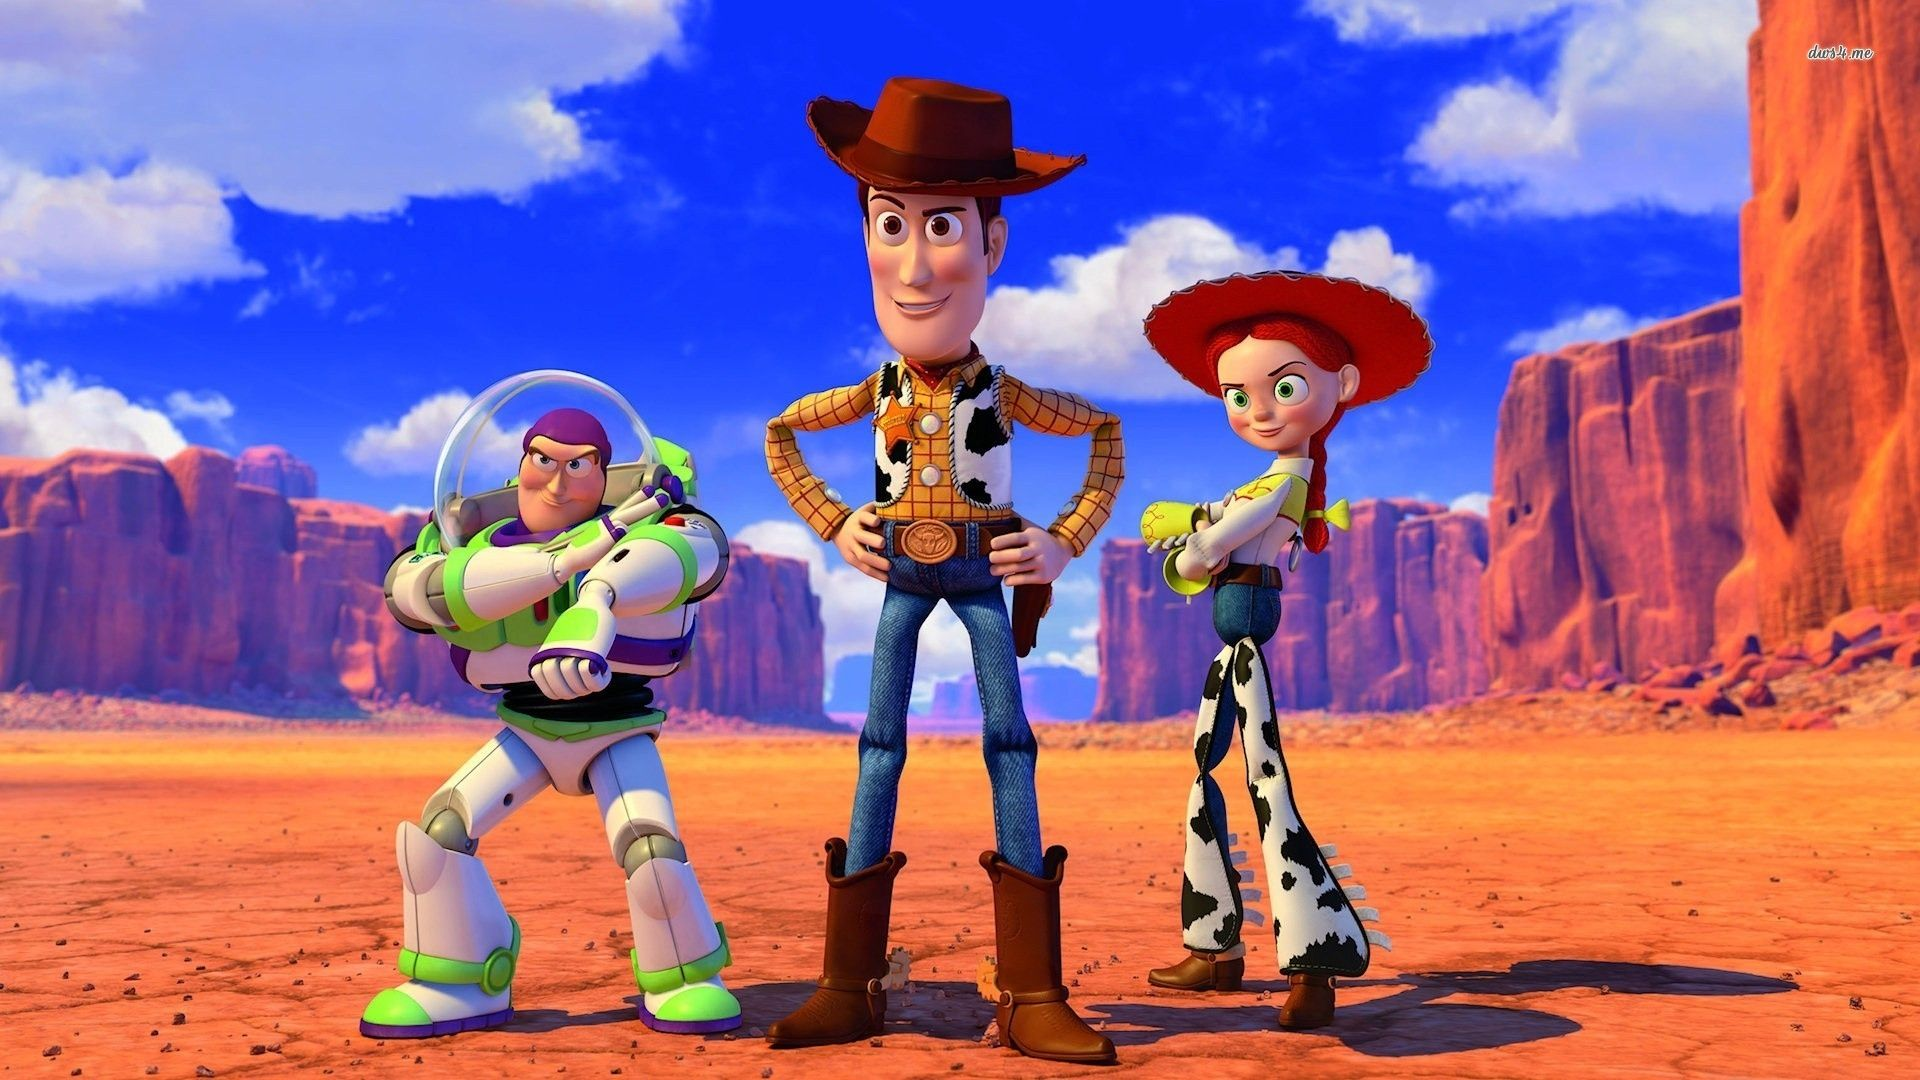 Buzz Lightyear, Sheriff Woody, and Jessie, Toy Story